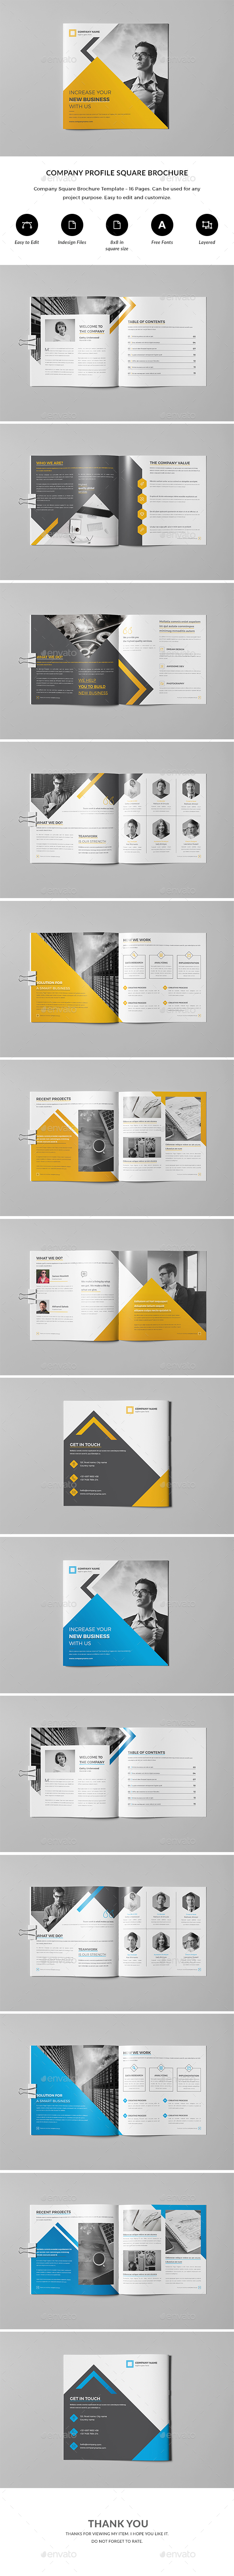 Company Profile - Square - Brochures Print Templates